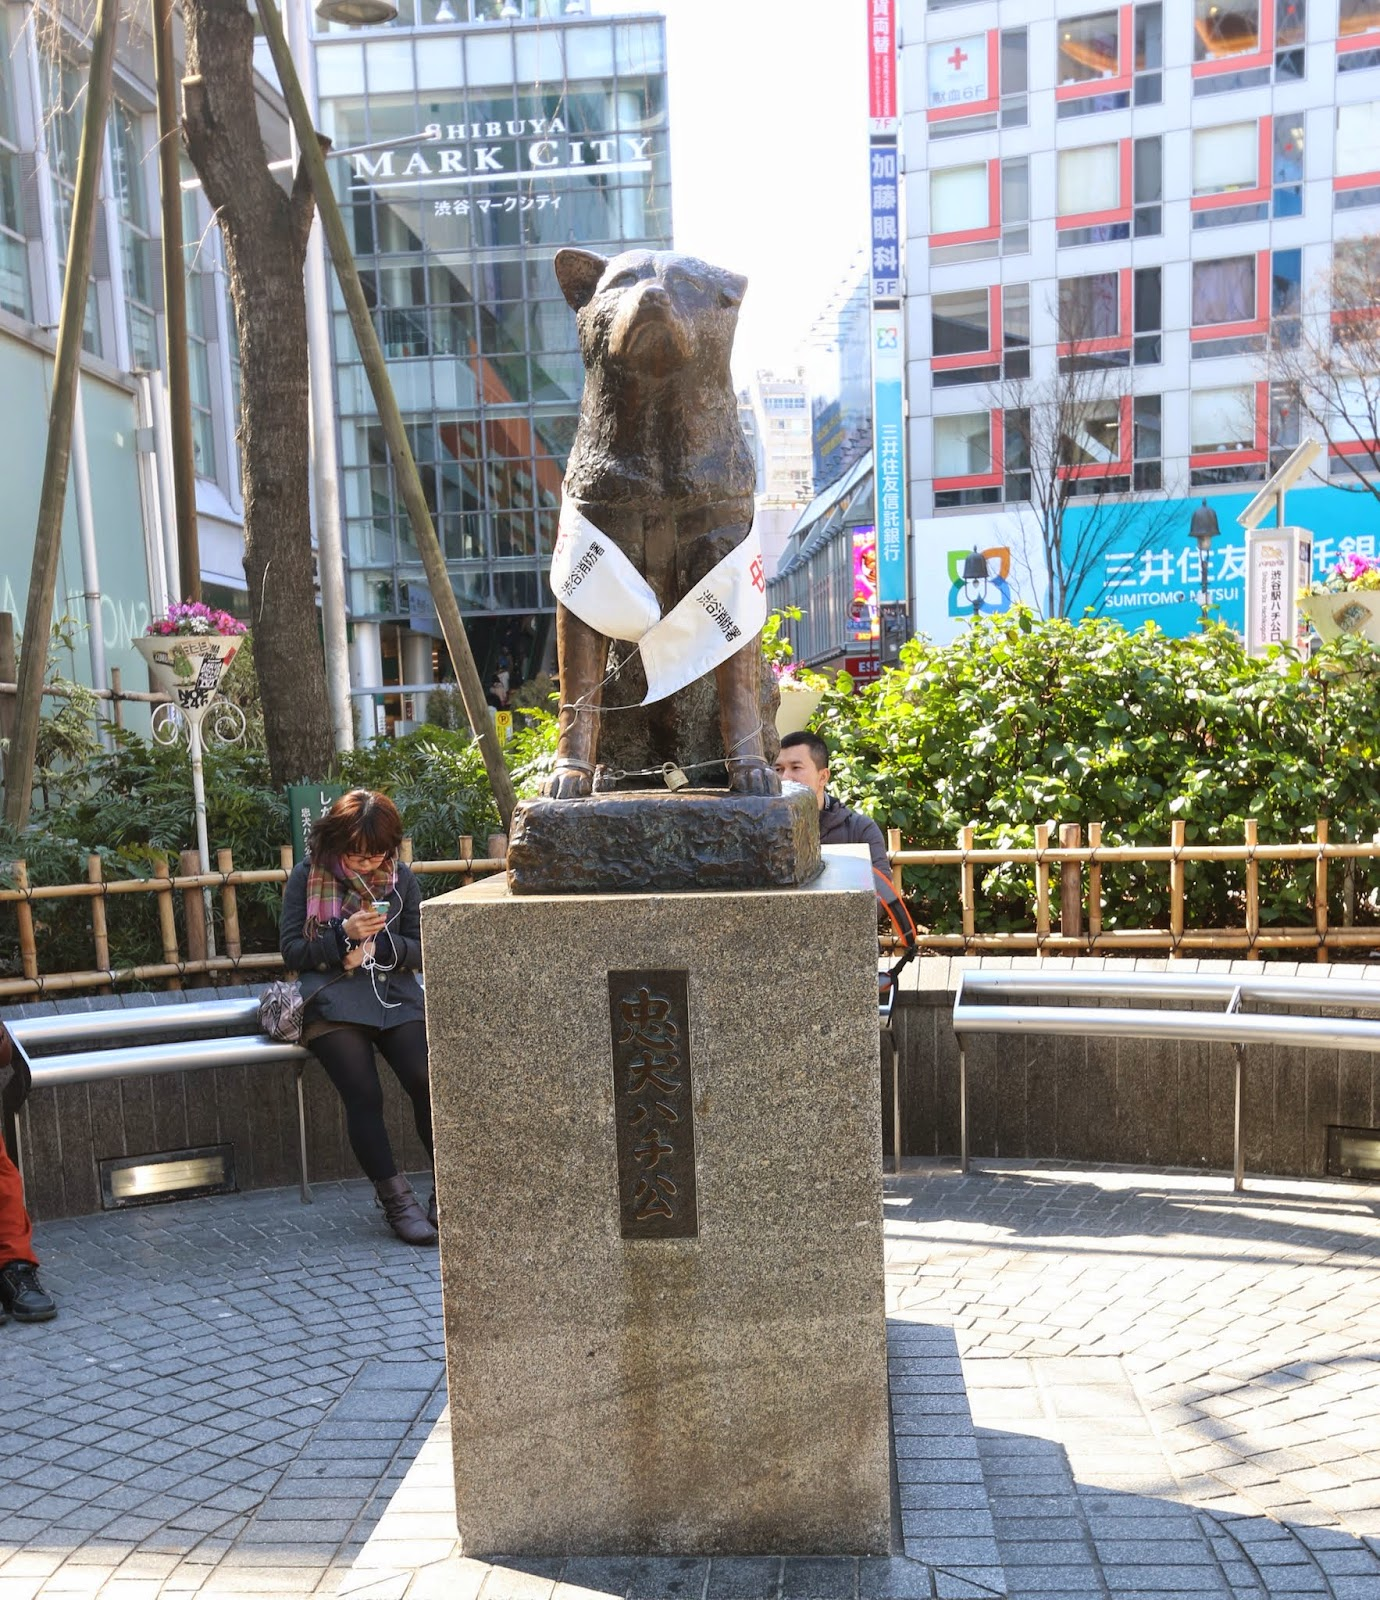 The famous Hachiko statue in front of Shibuya Station in Tokyo, Japan